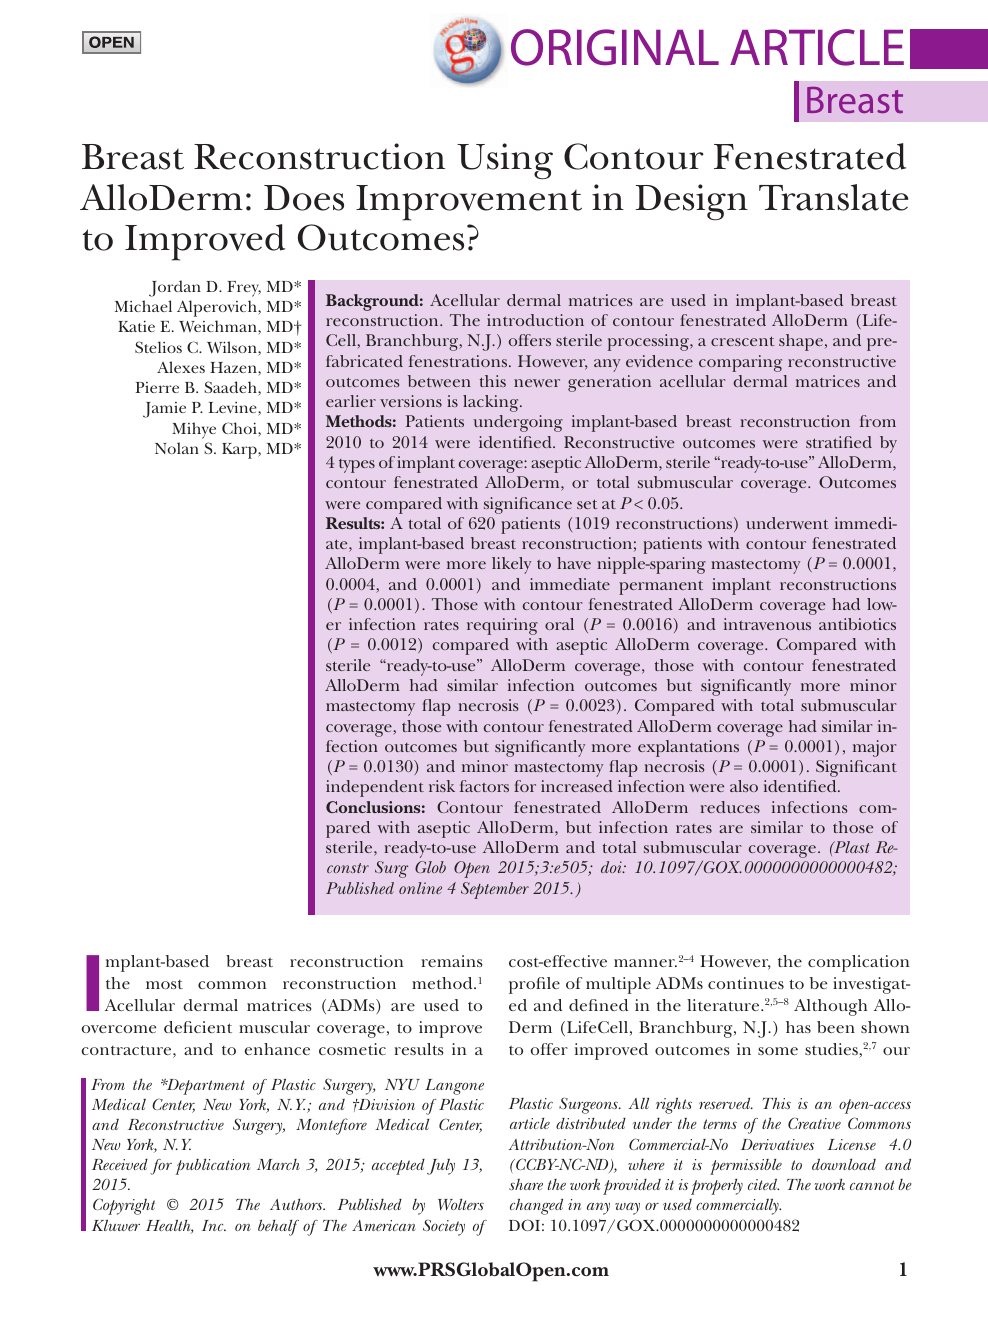 Breast Reconstruction Using Contour Fenestrated AlloDerm – topic of